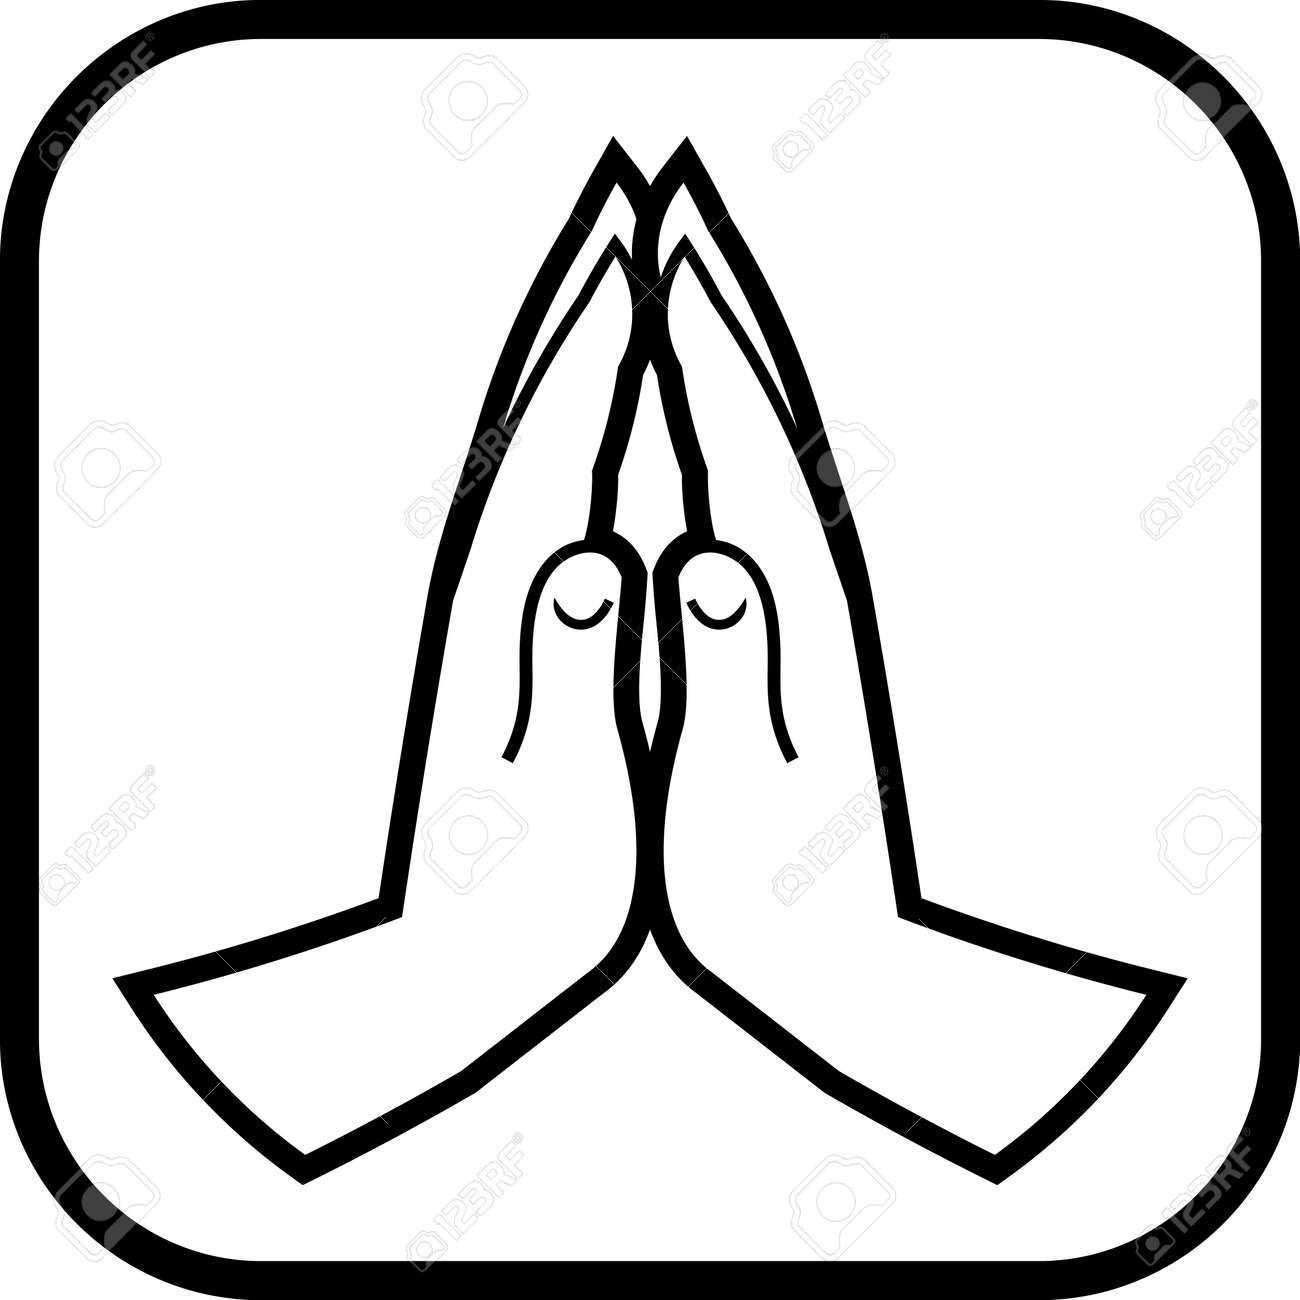 Praying hands vector icon - 52830974